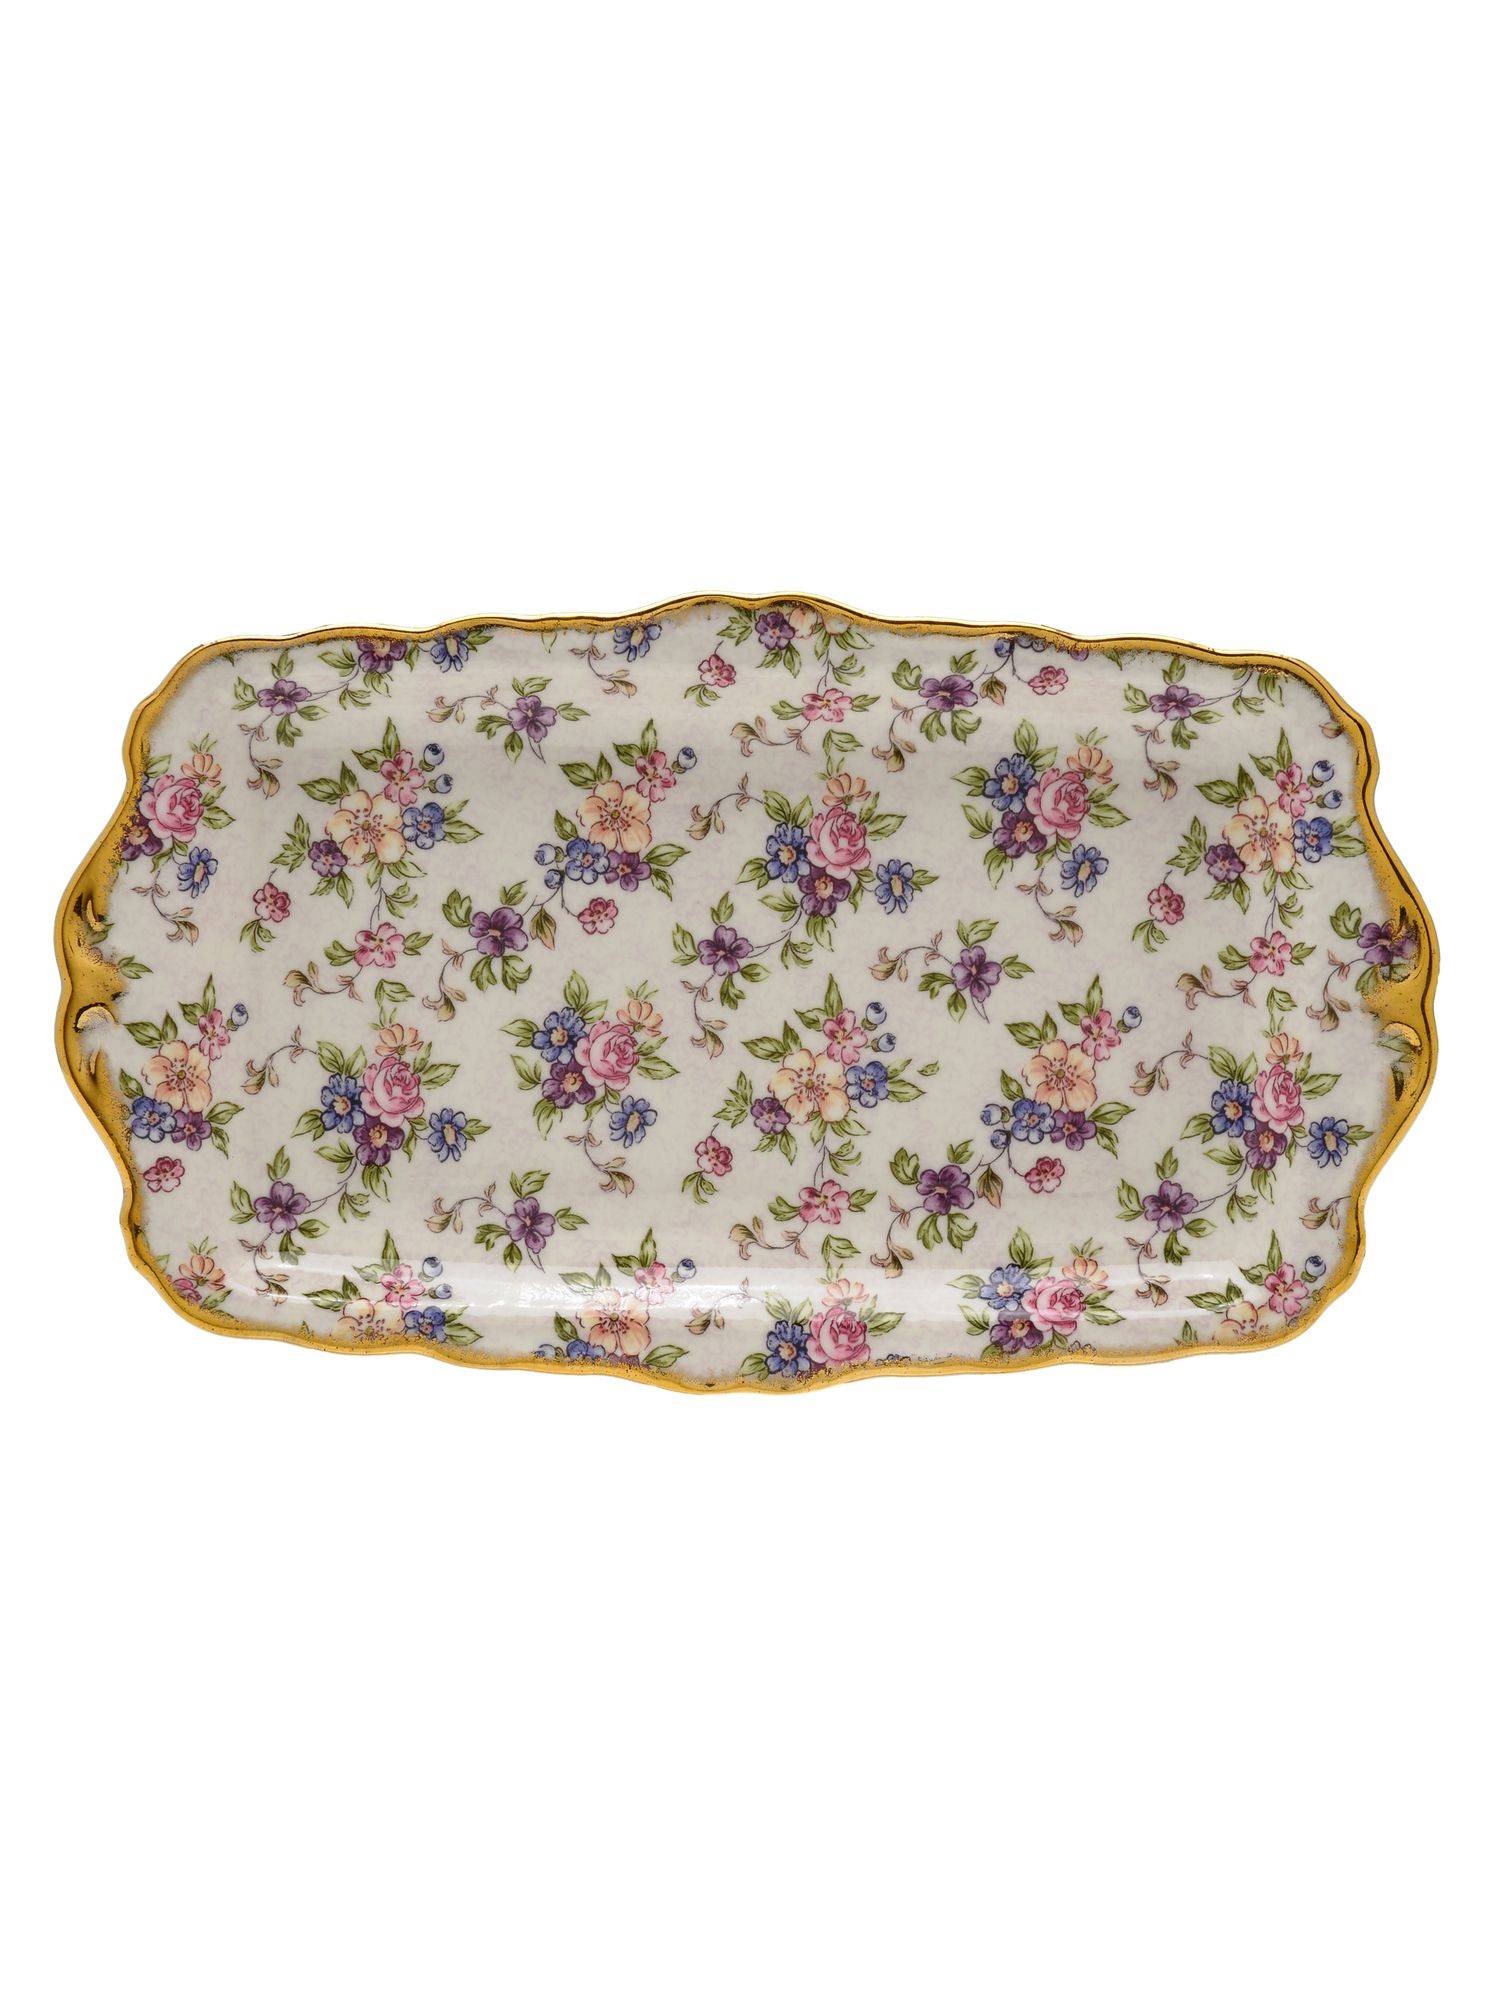 100 years of 1940 chintz sandwich tray